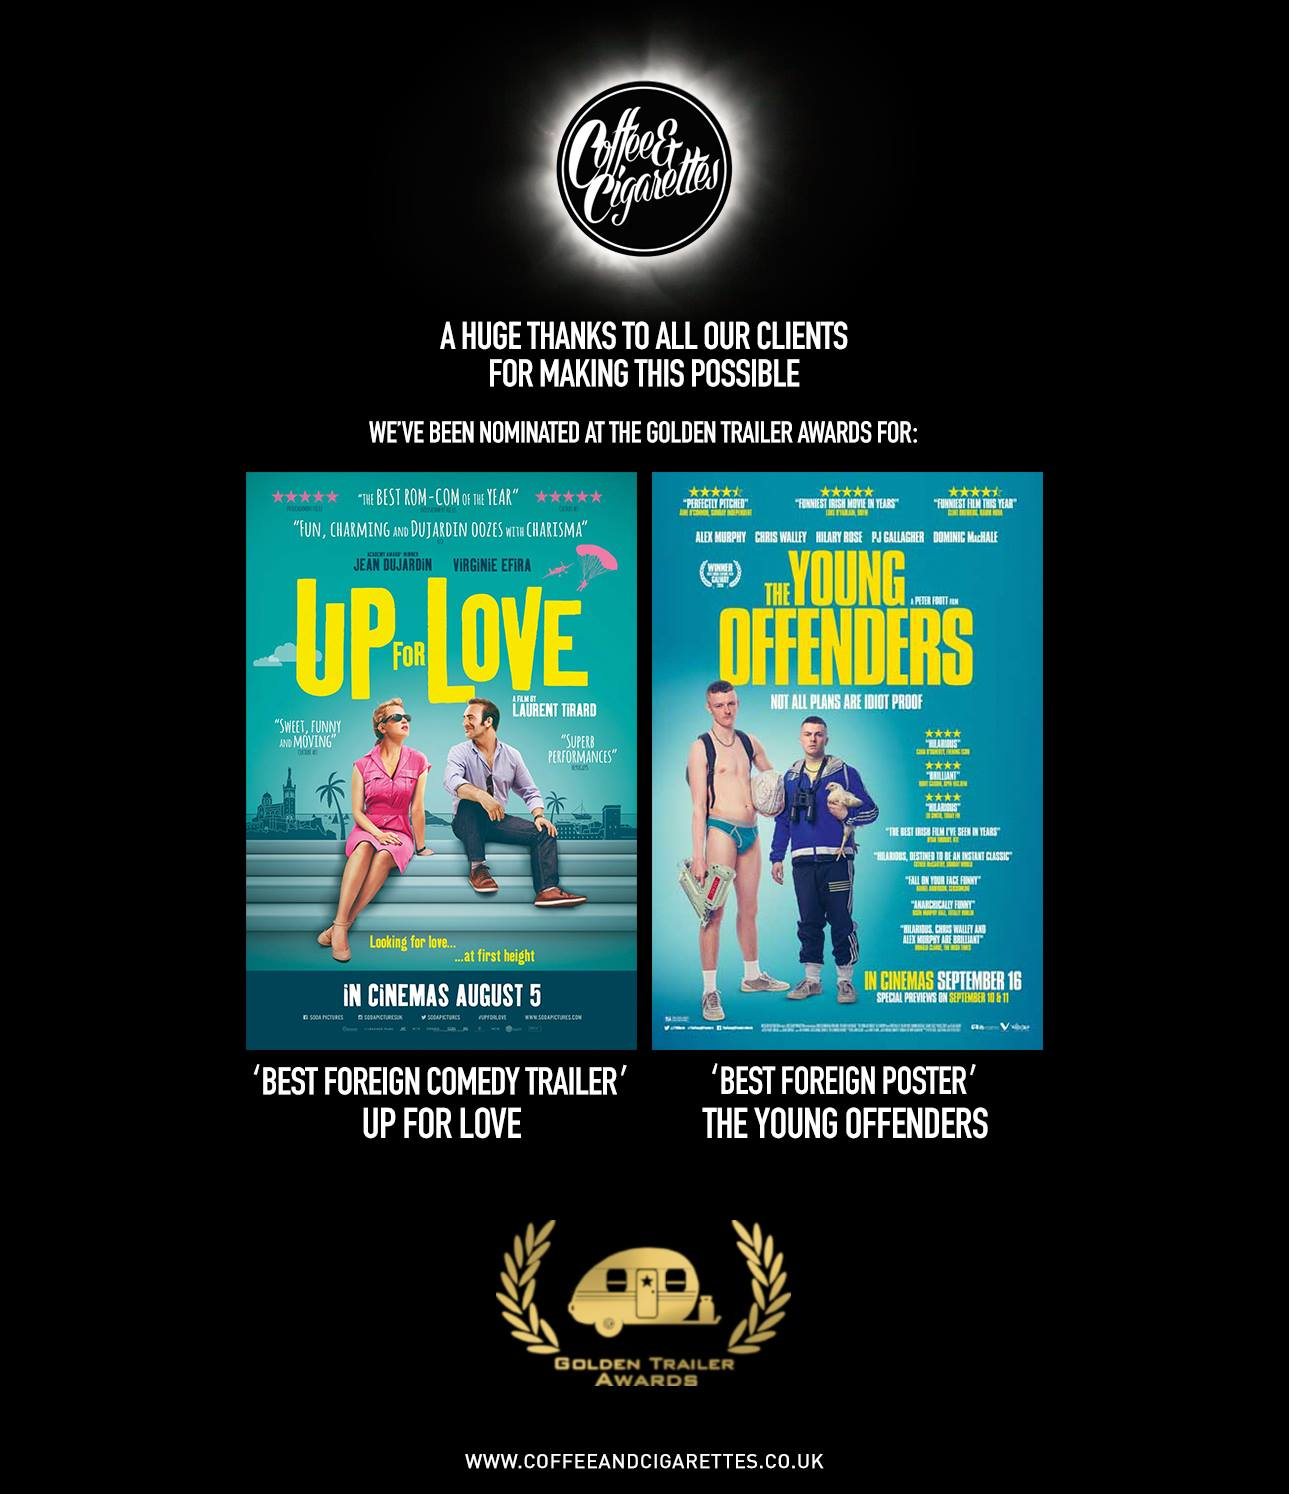 Golden Trailer awards nomination for best trailer and best poster film